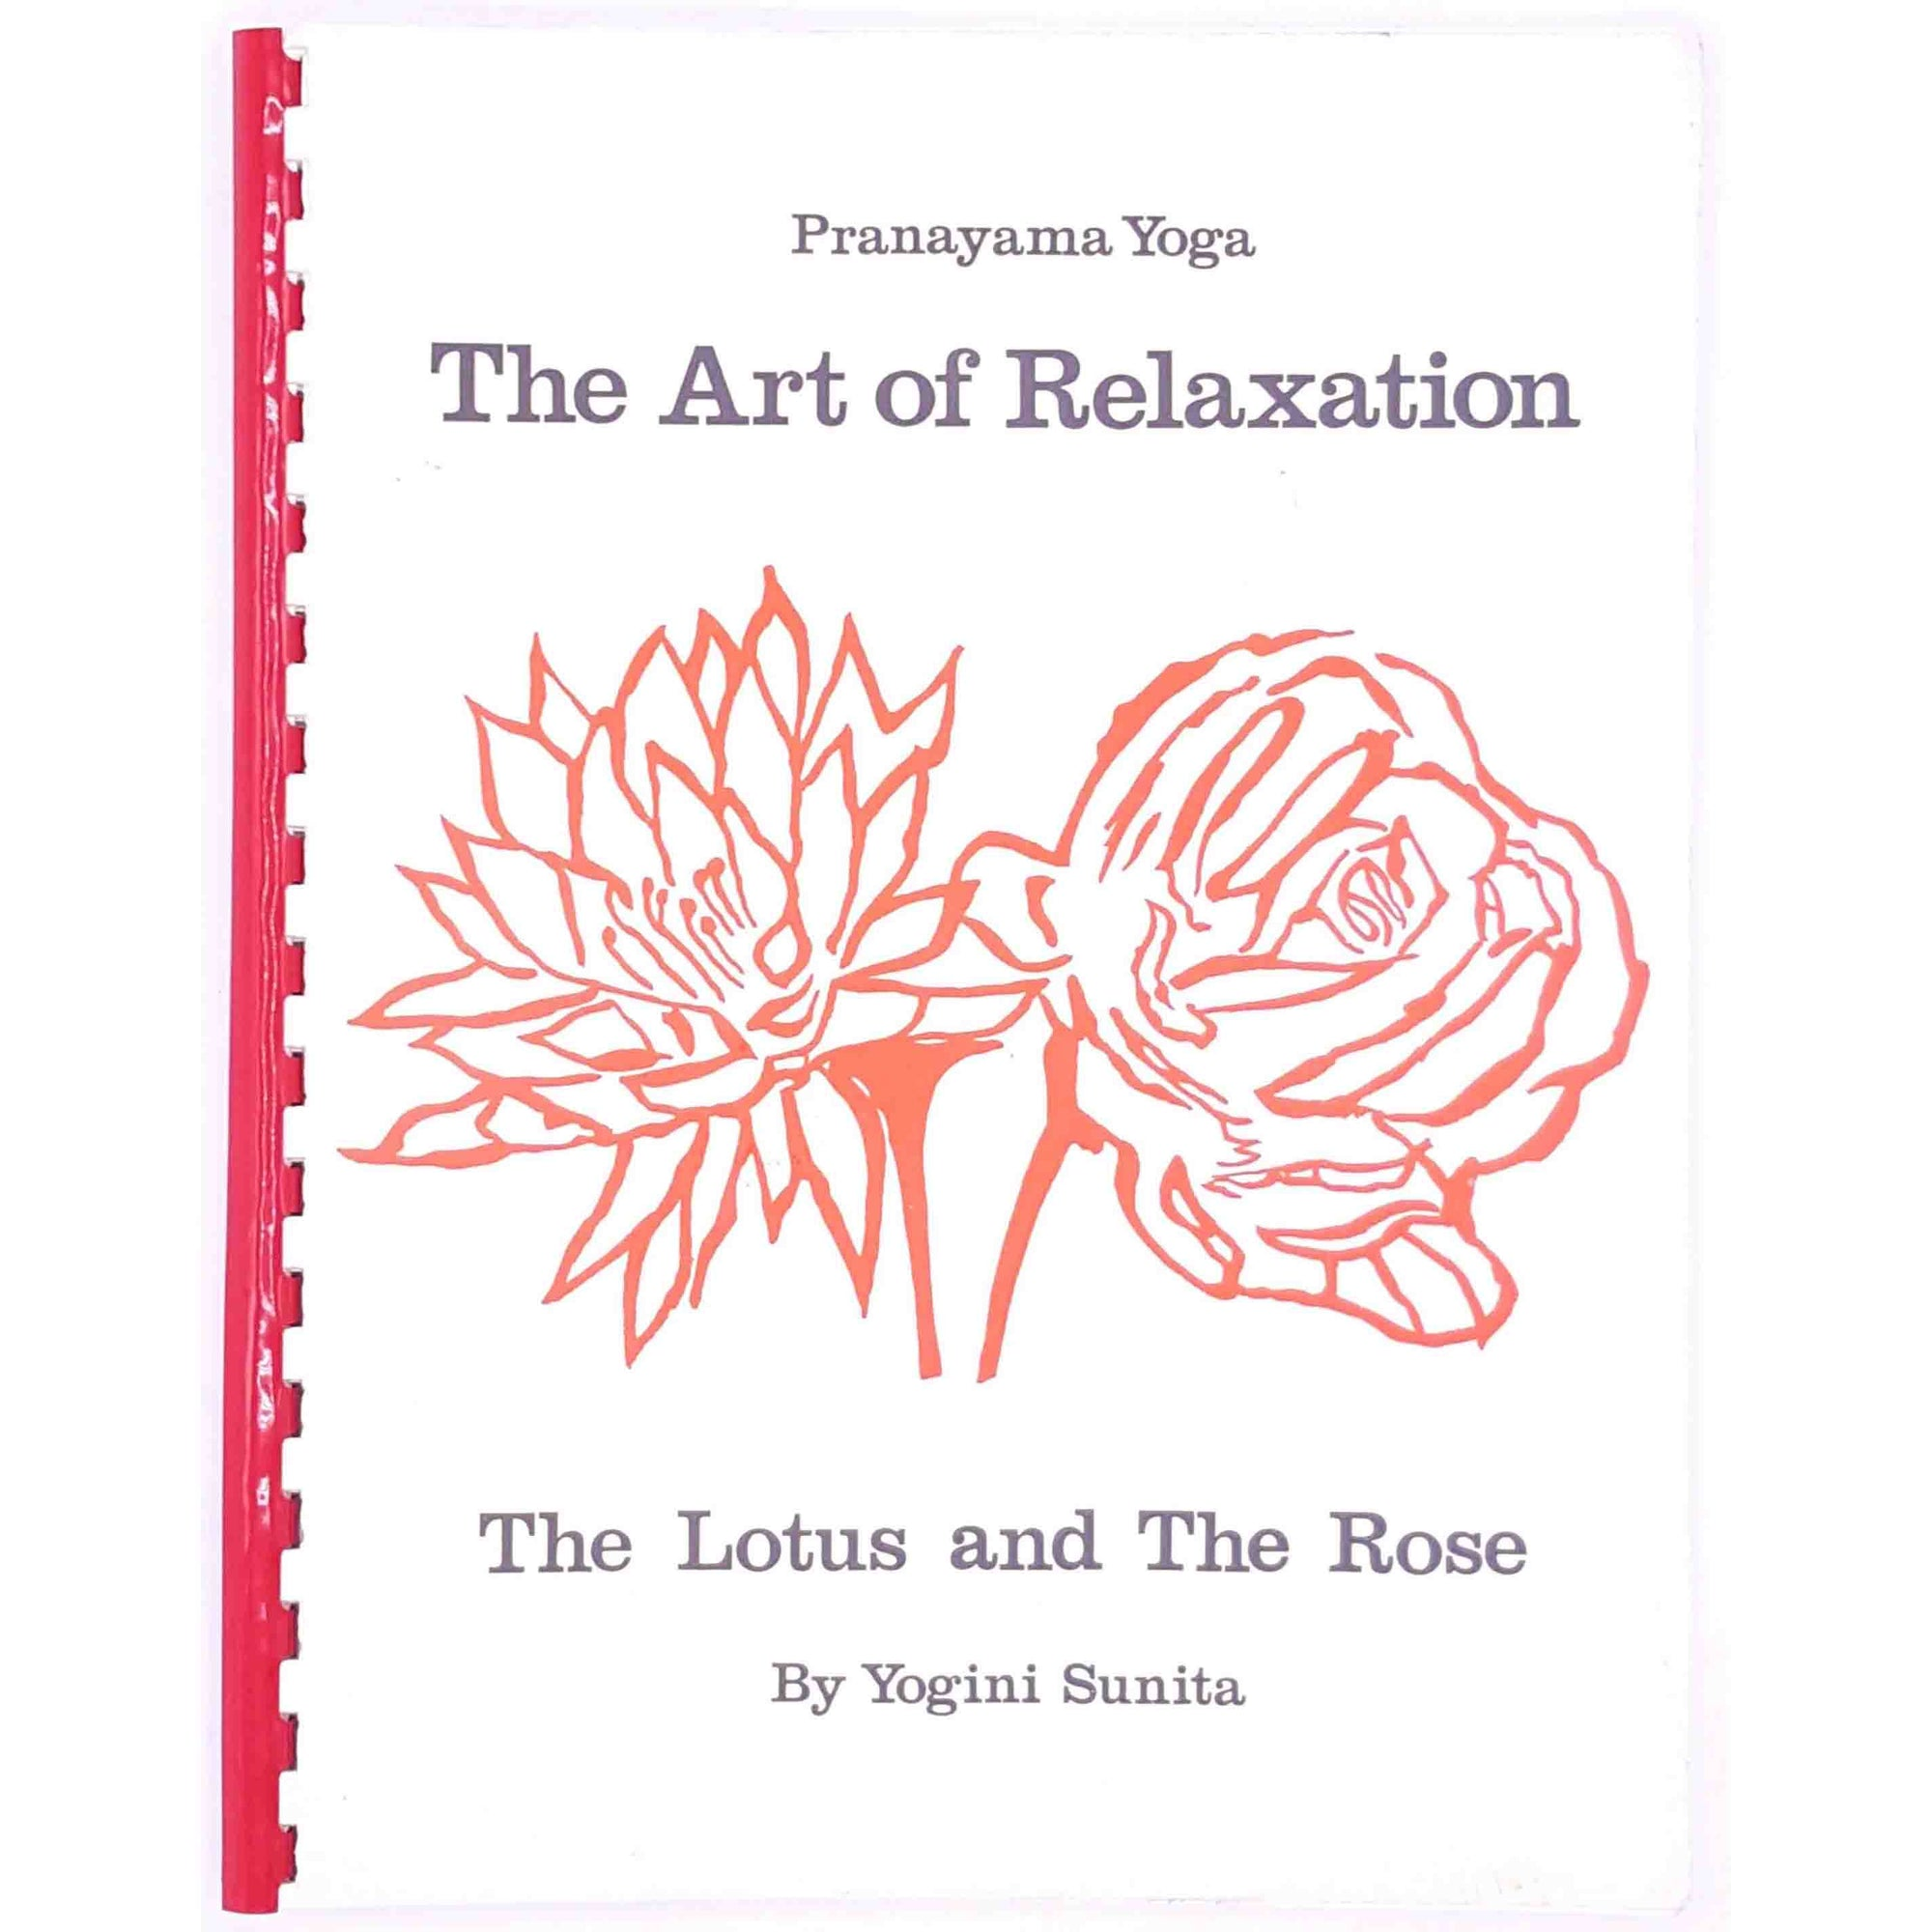 The Art Of Relaxation, The Lotus and the Rose, Yogini Sunita